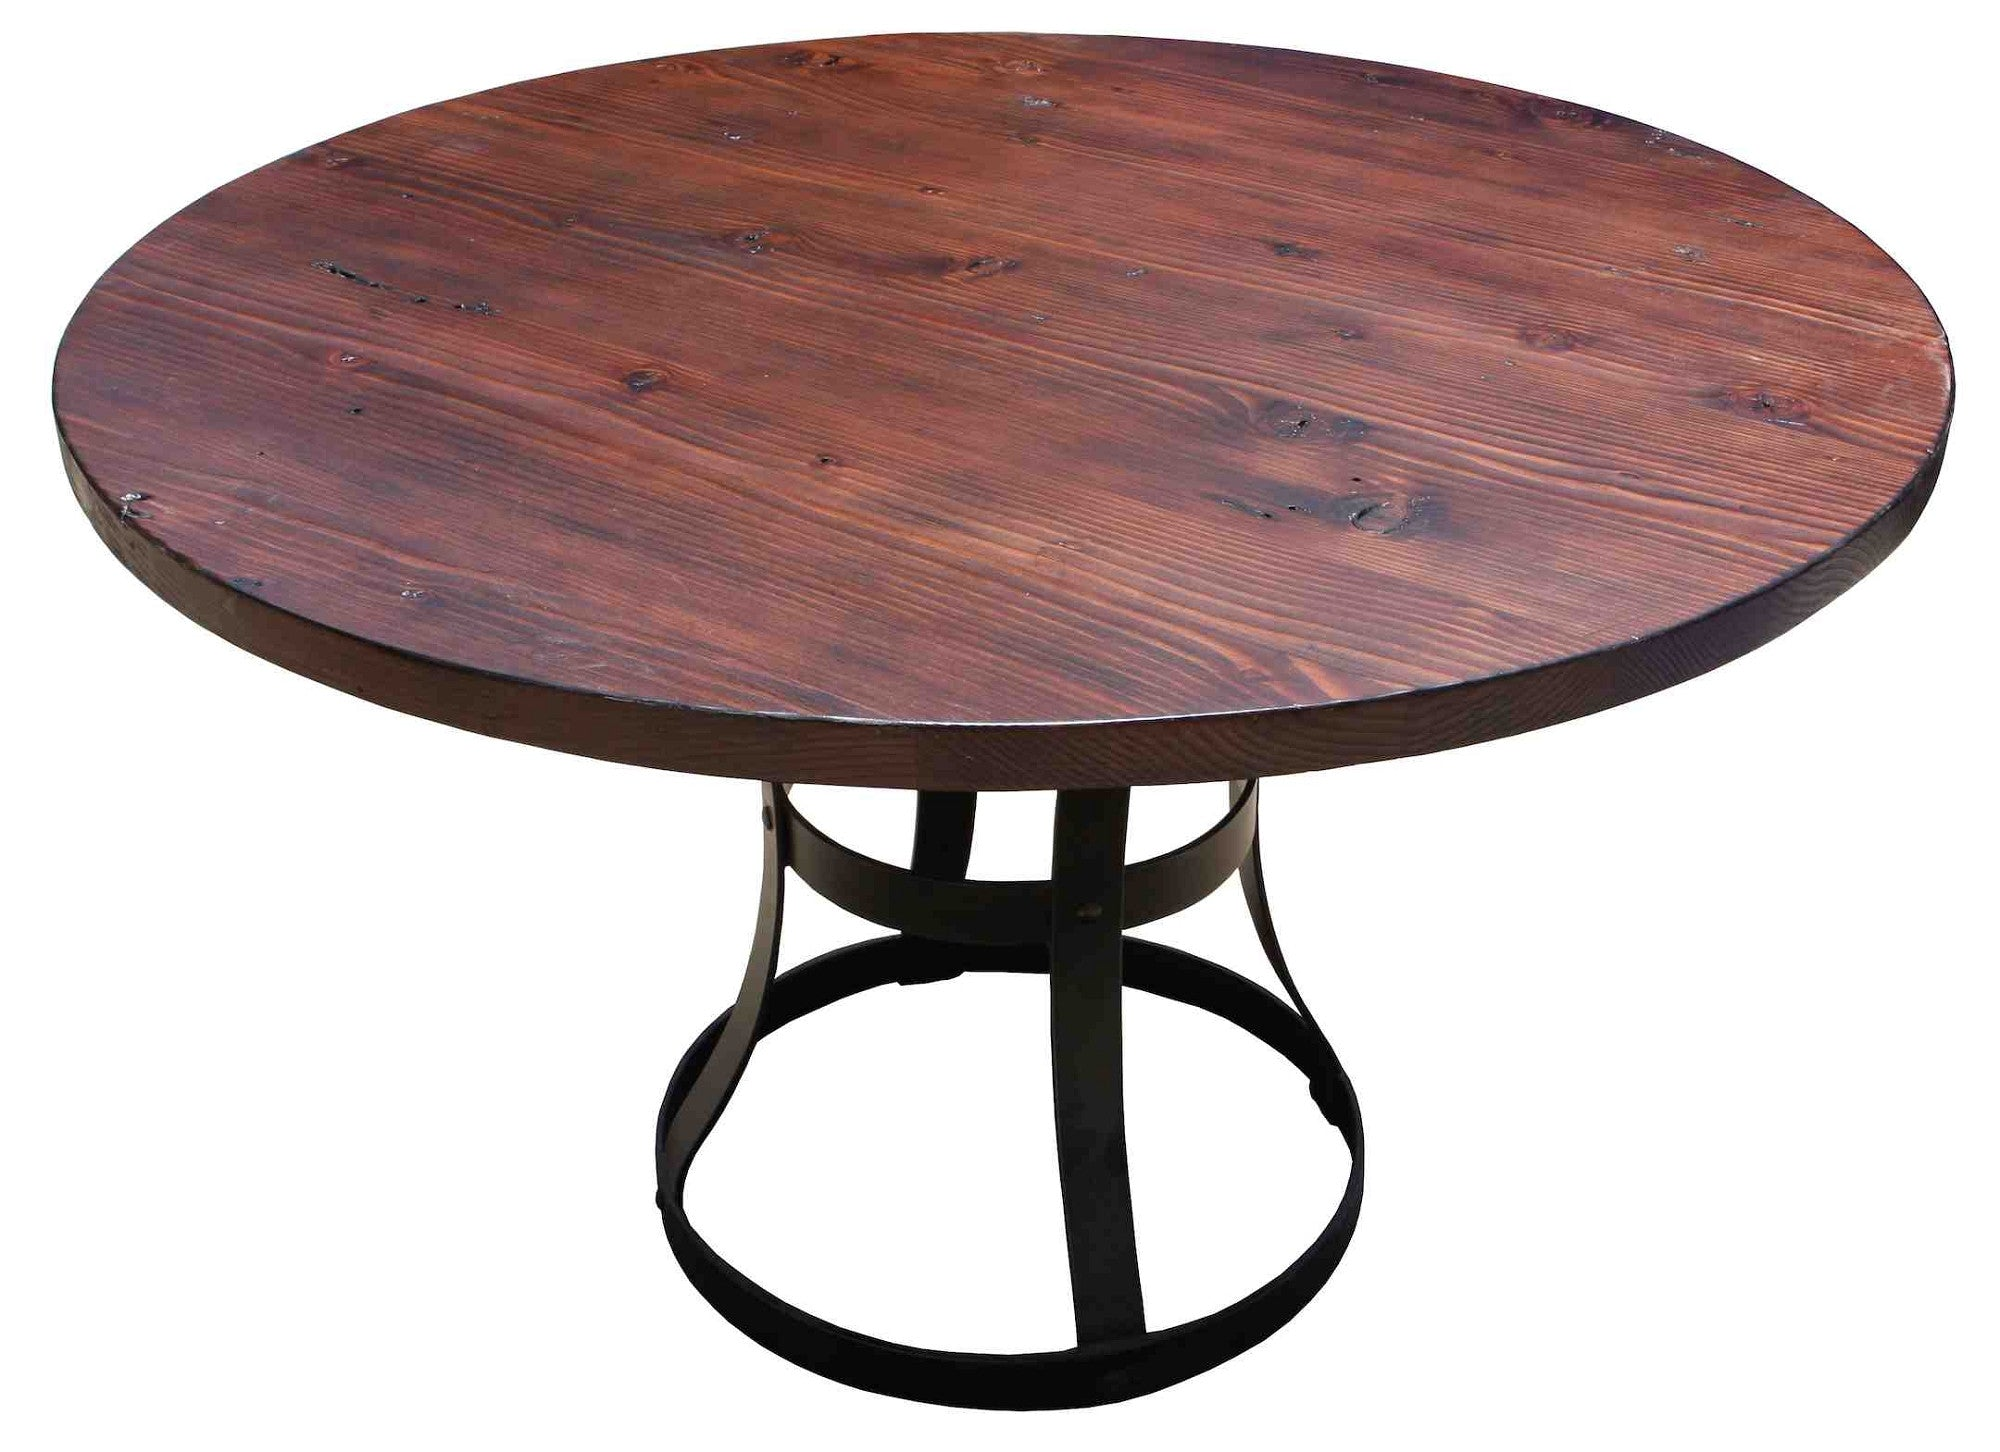 Detroit DiningTable in Reclaimed Wood and Metal